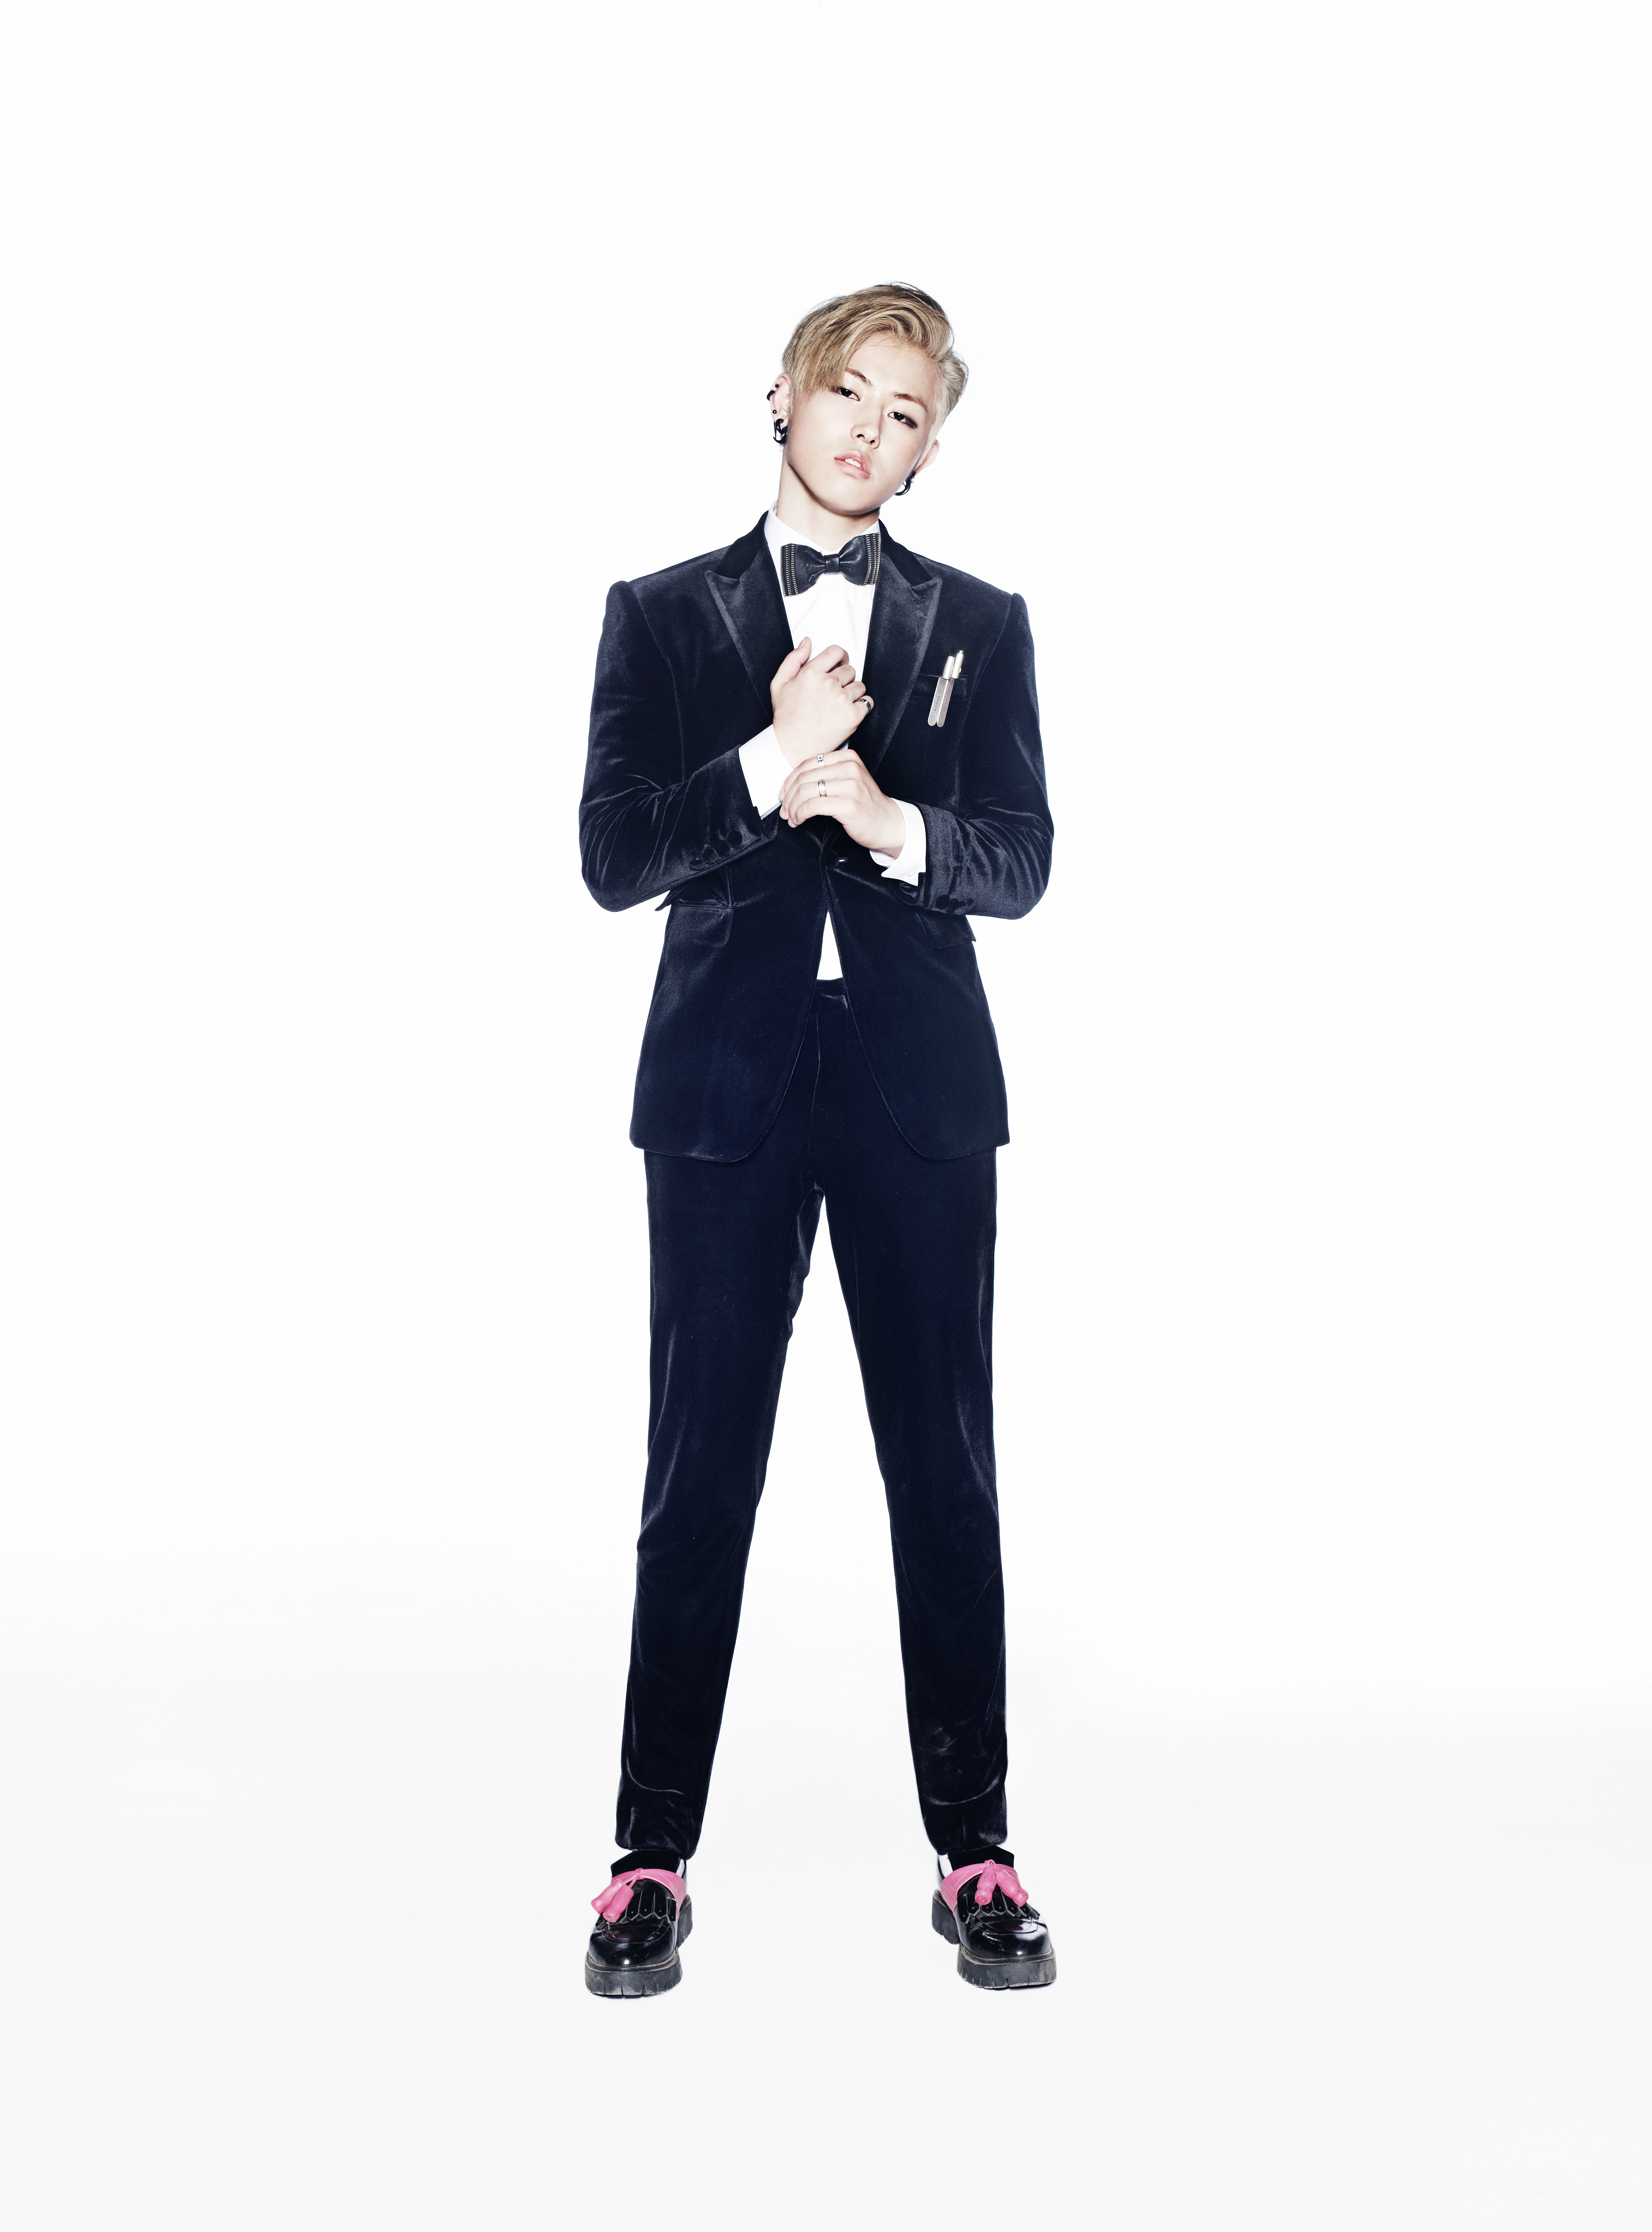 U Kwon Android Iphone Wallpaper 128337 Asiachan Kpop Image Board